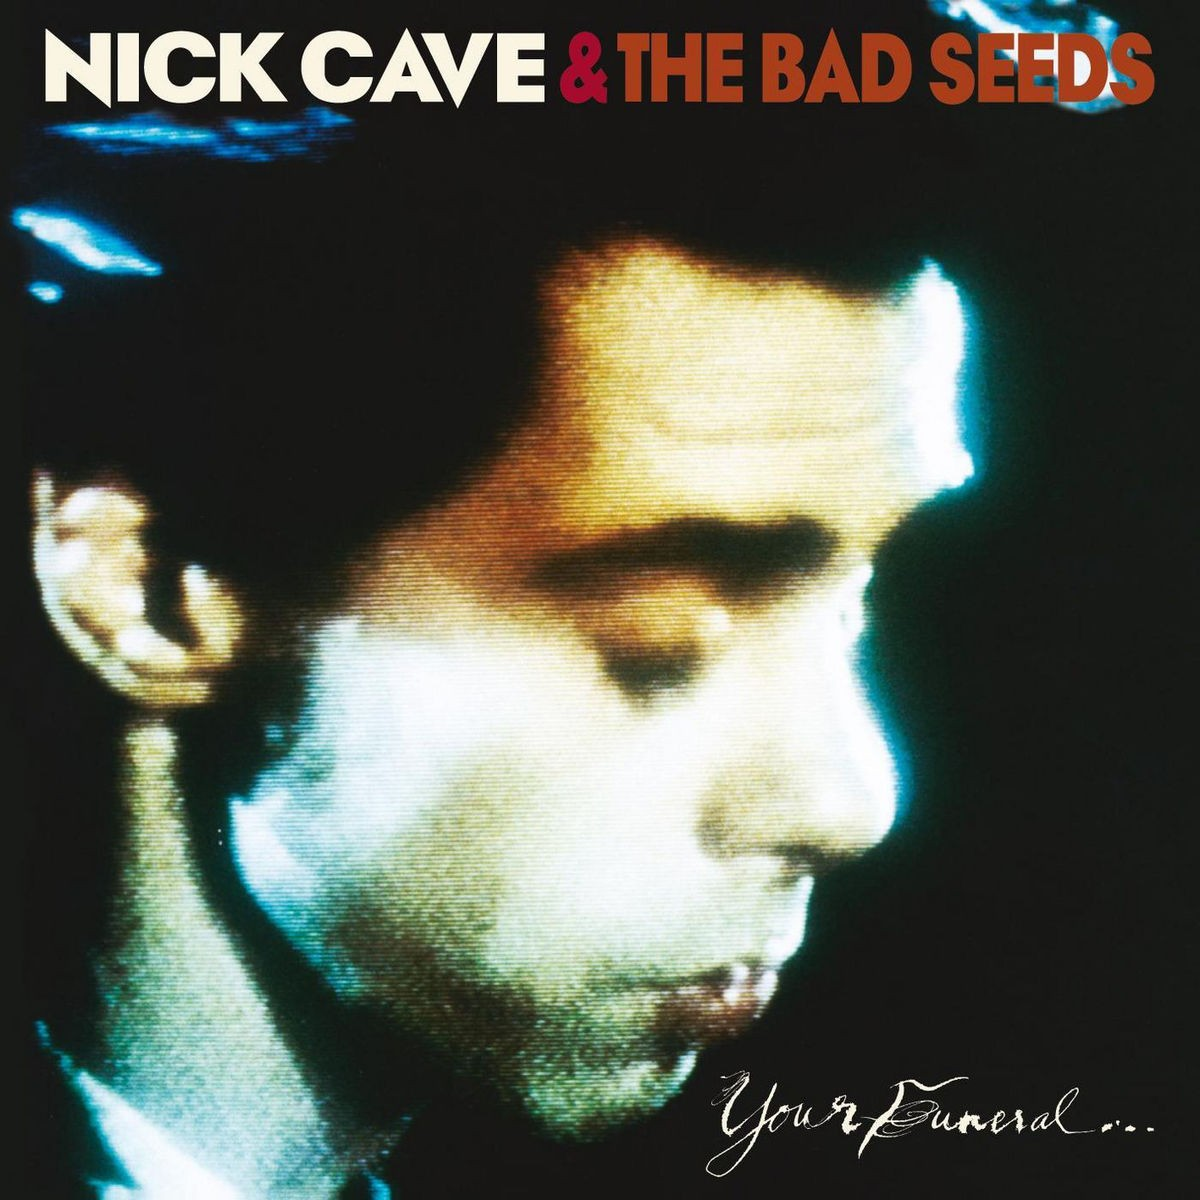 Nick Cave & The Bad Seeds - Your Funeral... My Trial VINYL - 54149397104